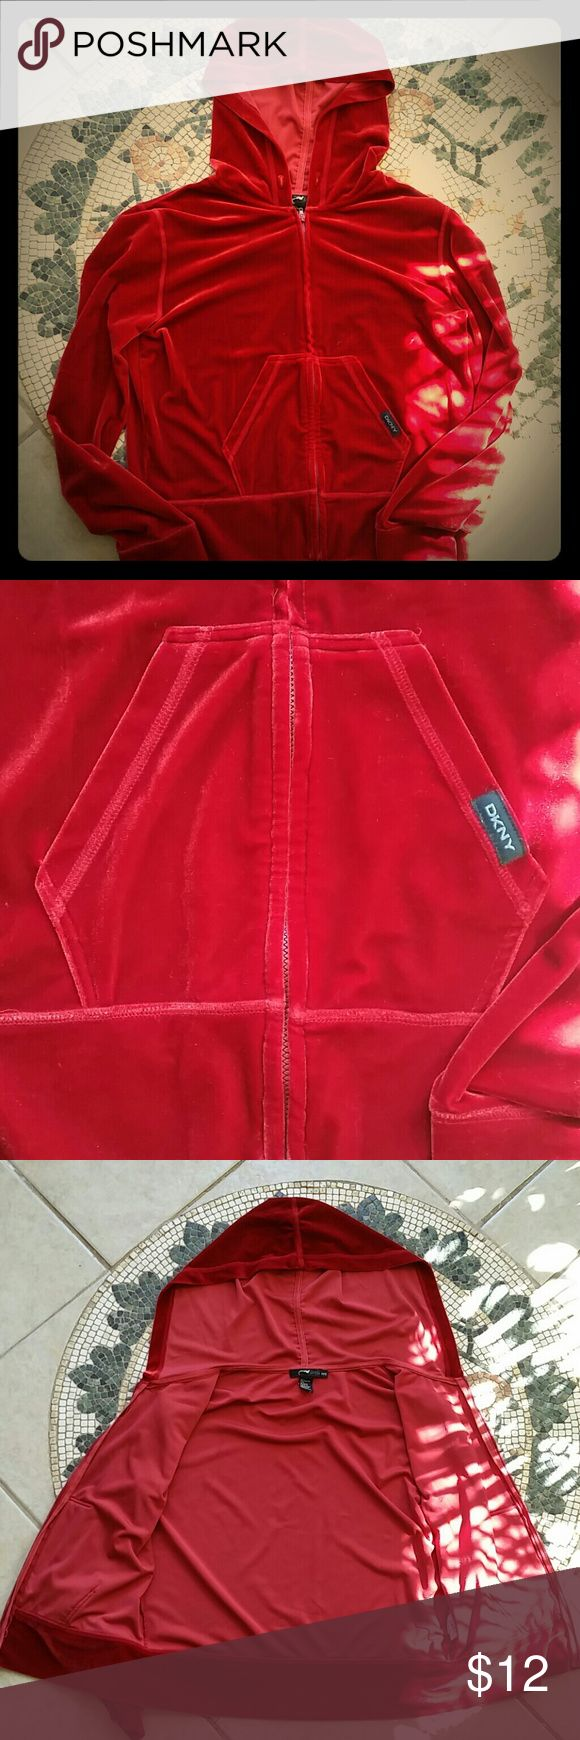 VINTAGE USED DKNY Zip-Up Velour Hoodie Rich red, vintage DKNY zip-up velour hoodie. It is PETITE small. Being vintage, it is in USED condition and shows obvious signs of wear as shown in pictures: on elbows,  zipper, tag, and fading and pilling on the inside. Hoodie is also missing cord to hood. Overall in good condition and great original piece to stand out.  * For accuracy the color is more like the second picture, not ketchup red. DKNY Jackets & Coats